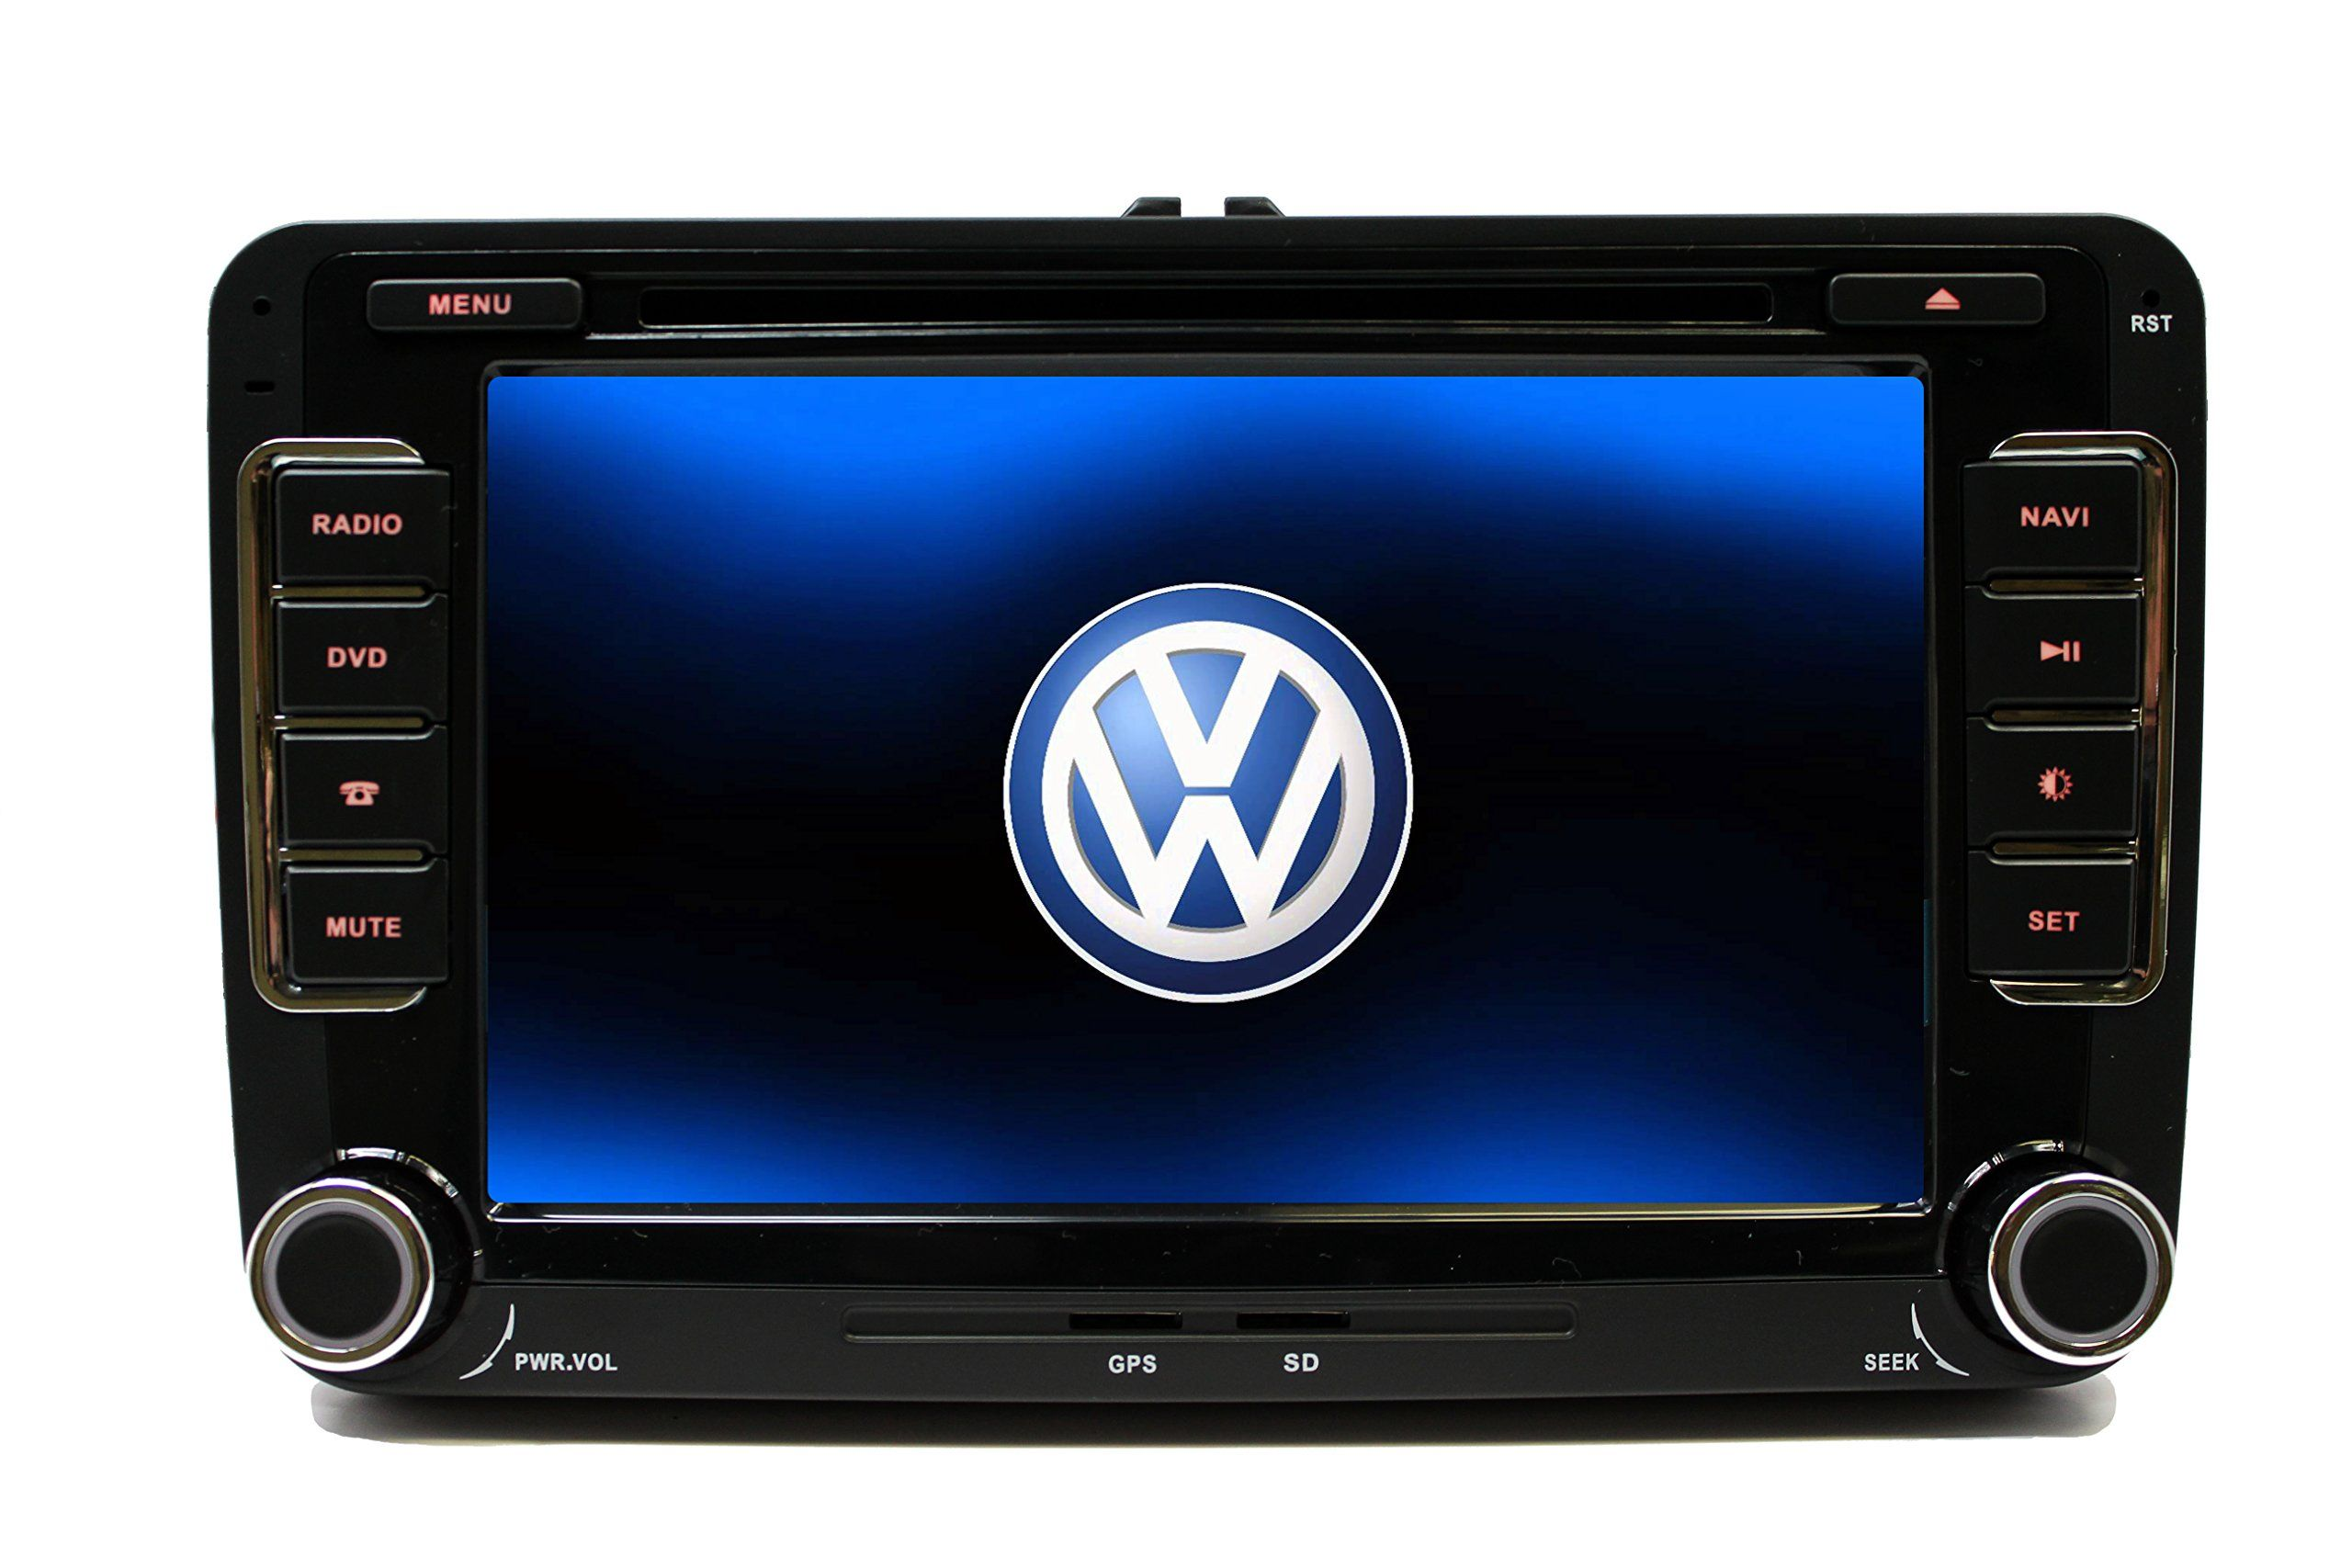 special_offer what are the features of volkswagen jetta oem replacement in dash double din touch screen gps dvd ipod navigation radio